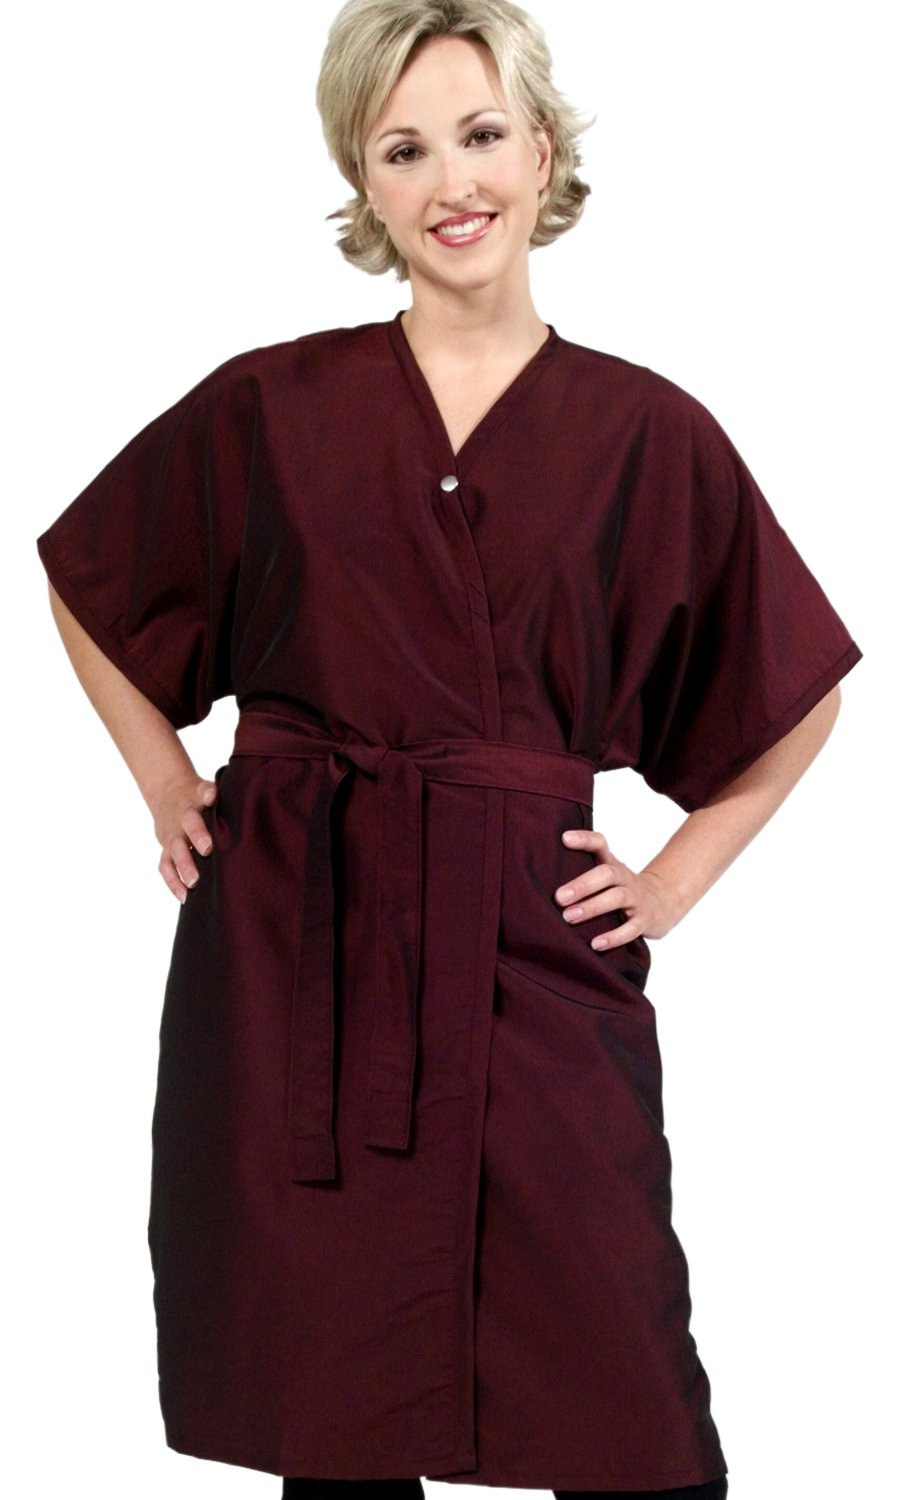 Set of 6 Salon Client Gowns / Client Smocks / Wraps In BLACK Silkarah ''BEST In Industry'' (Save $40) From ProHairTools by The Cape Company (Image #1)